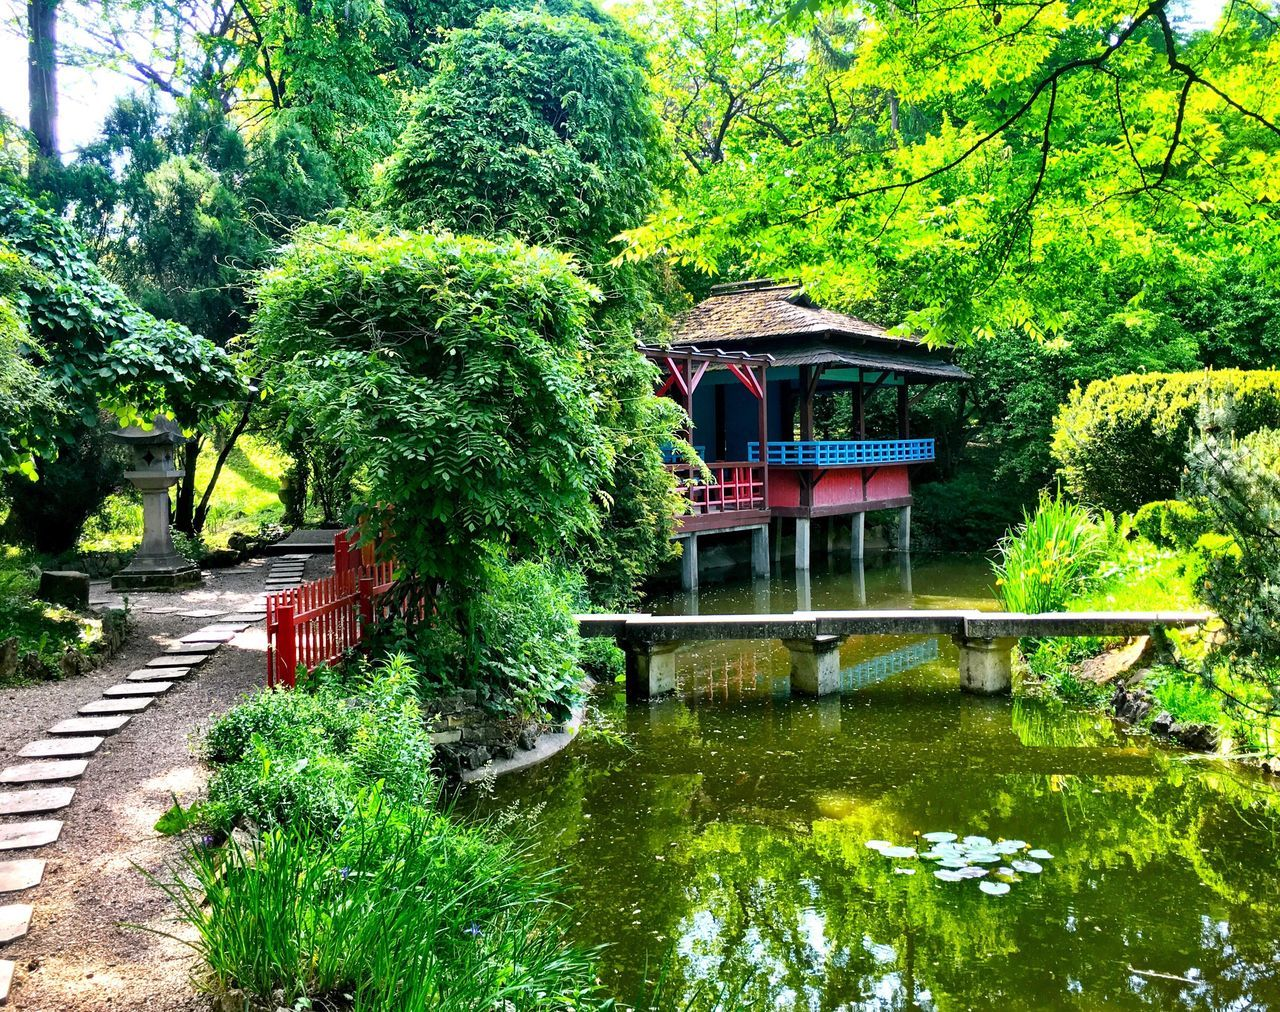 tree, nature, built structure, outdoors, growth, architecture, lake, beauty in nature, green color, water, building exterior, no people, plant, day